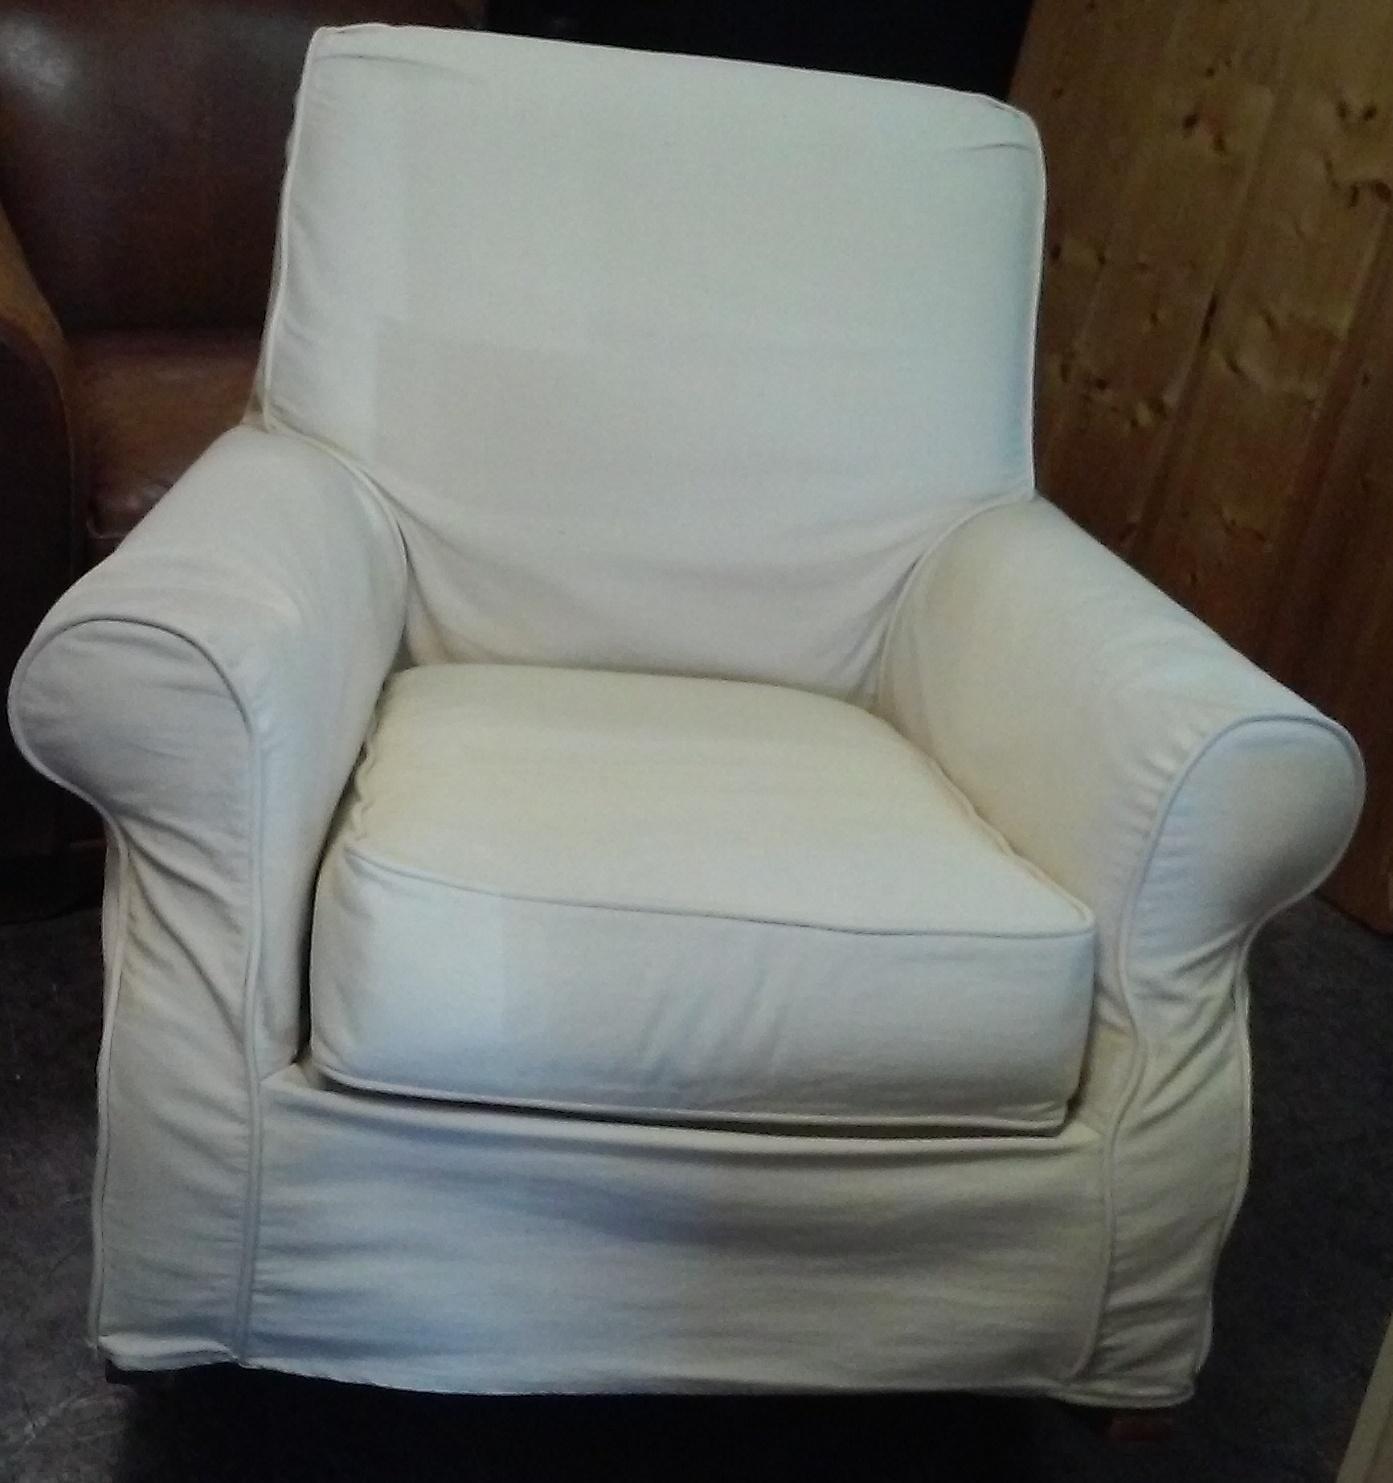 Upholstered Rocking Chair Slipcover Inspirations Home & Interior